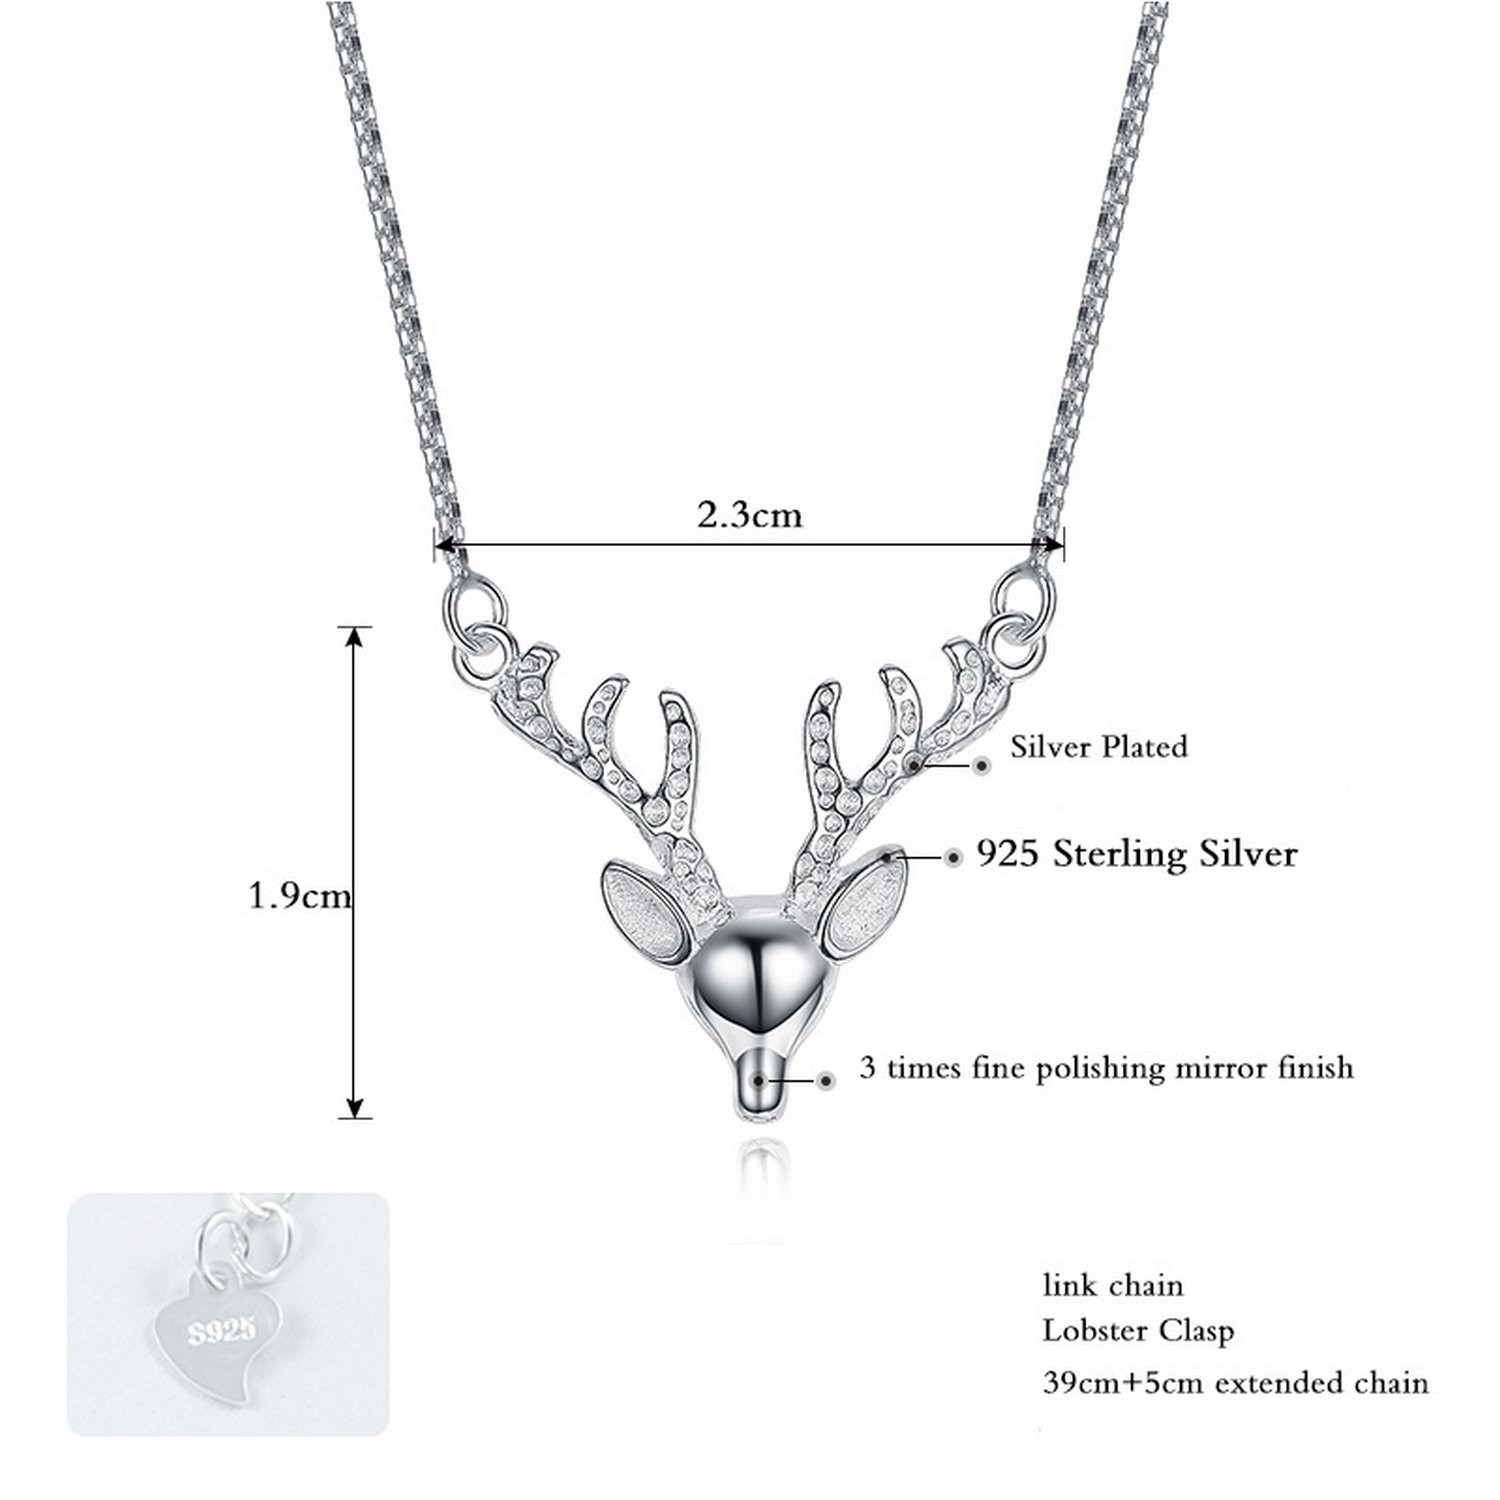 CS-DB Jewelry Silver Animal Necklace Colar Deer Chain Charm Pendants Necklaces